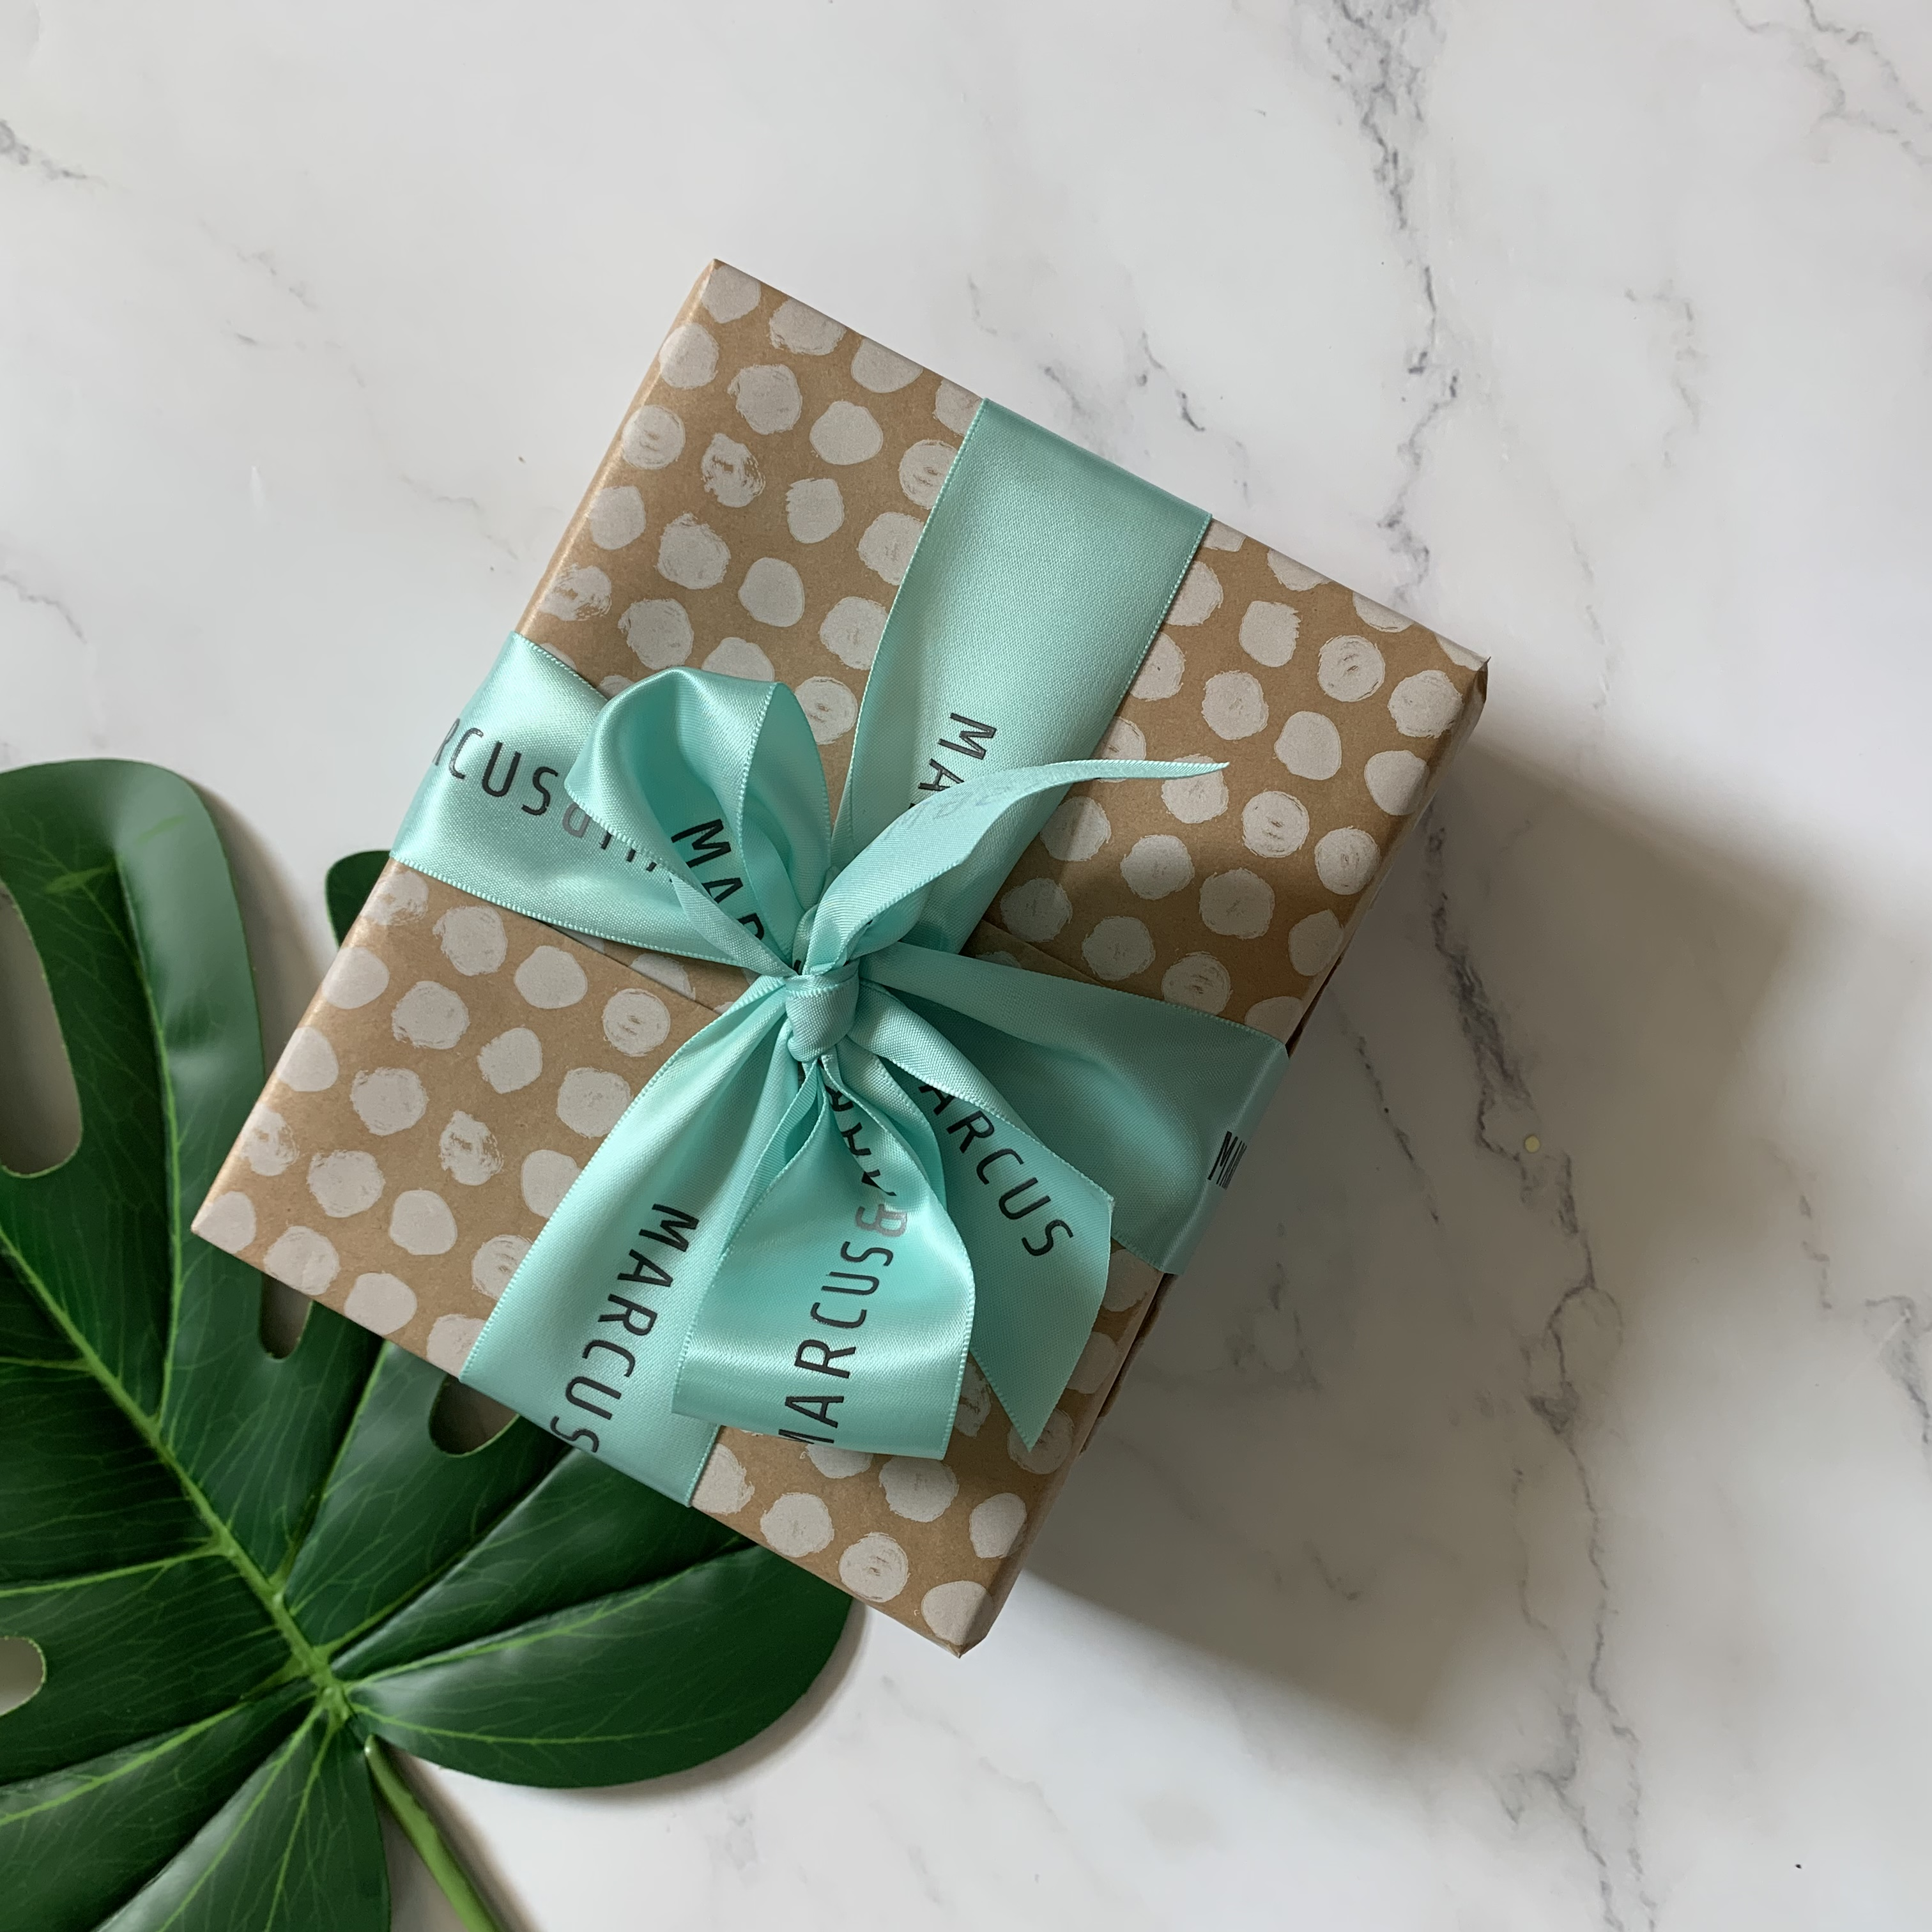 Marcus & Marcus | Our Products - Gift Ideas